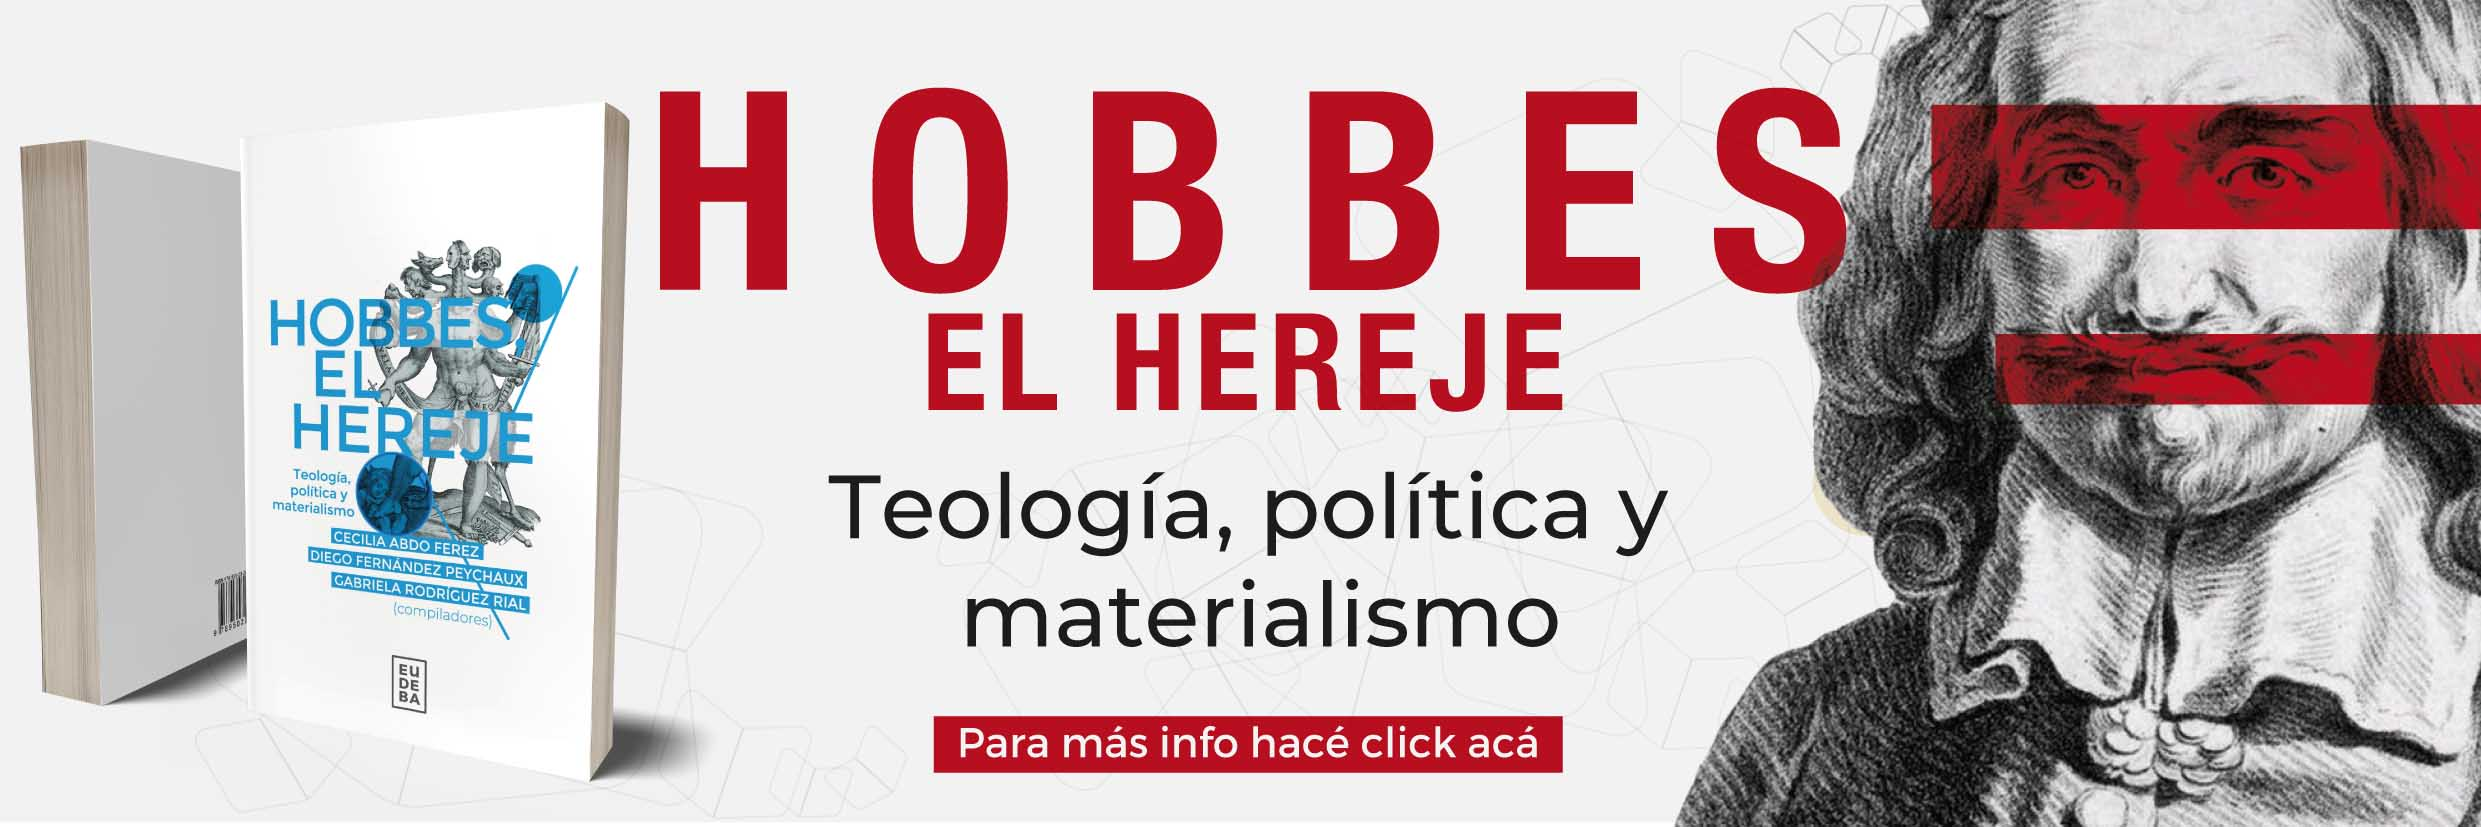 Hobbes Slider permanente